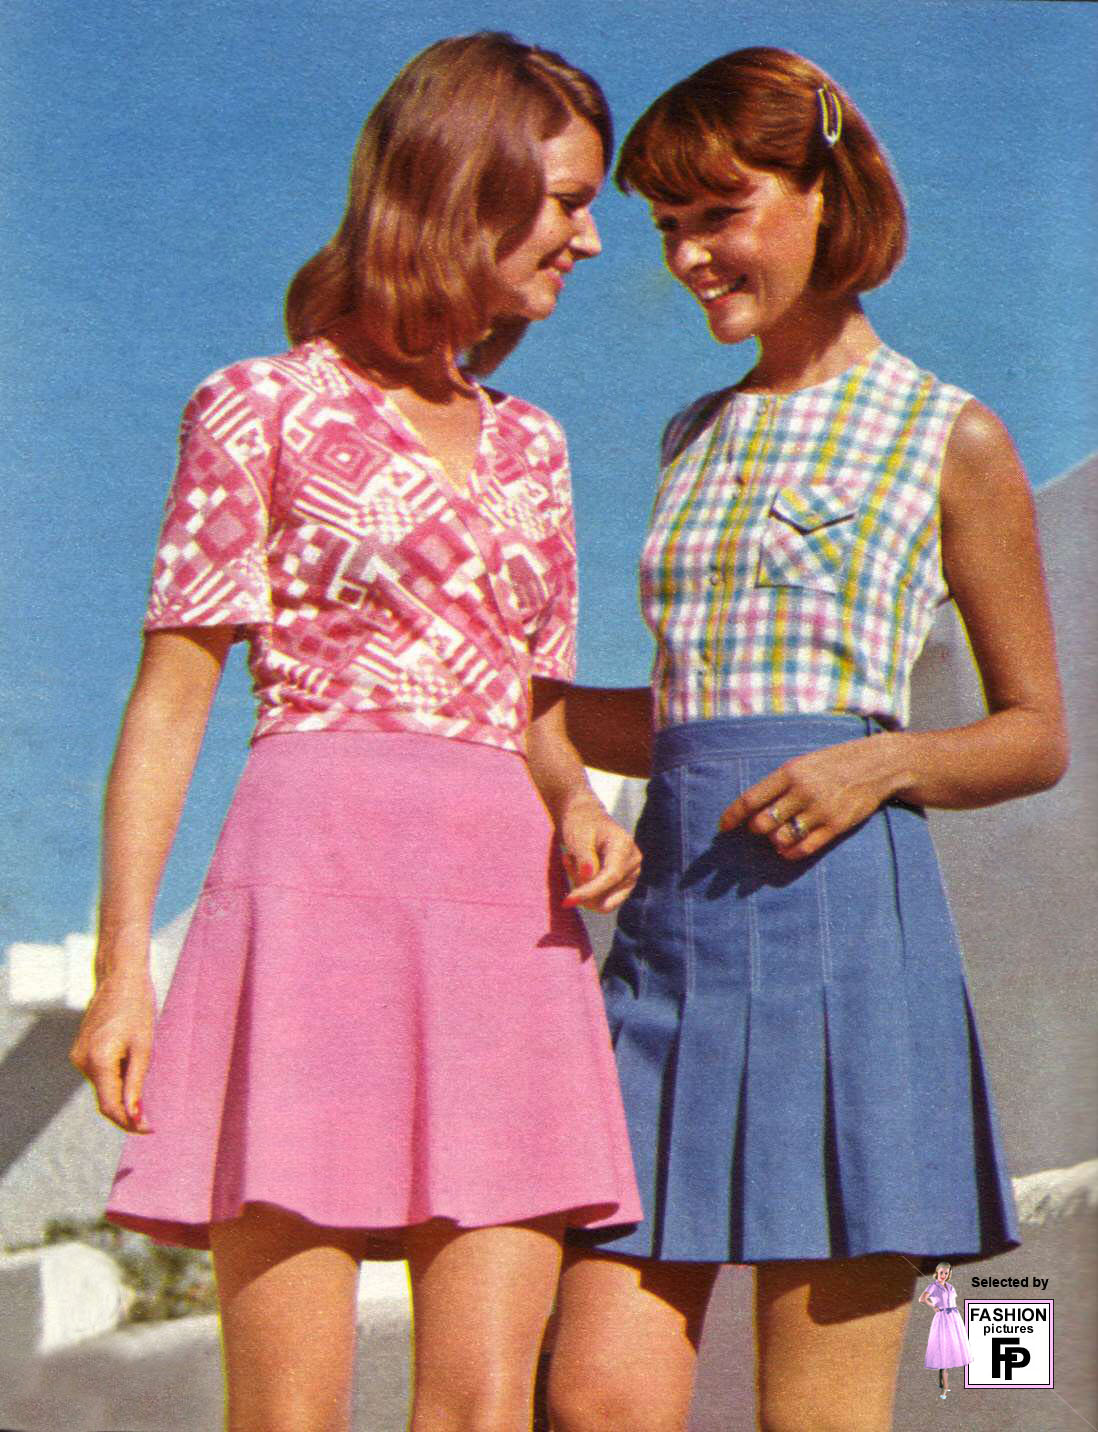 Retro fashion pictures from the 1950s 1960s 1970s 1980s and 1990s.